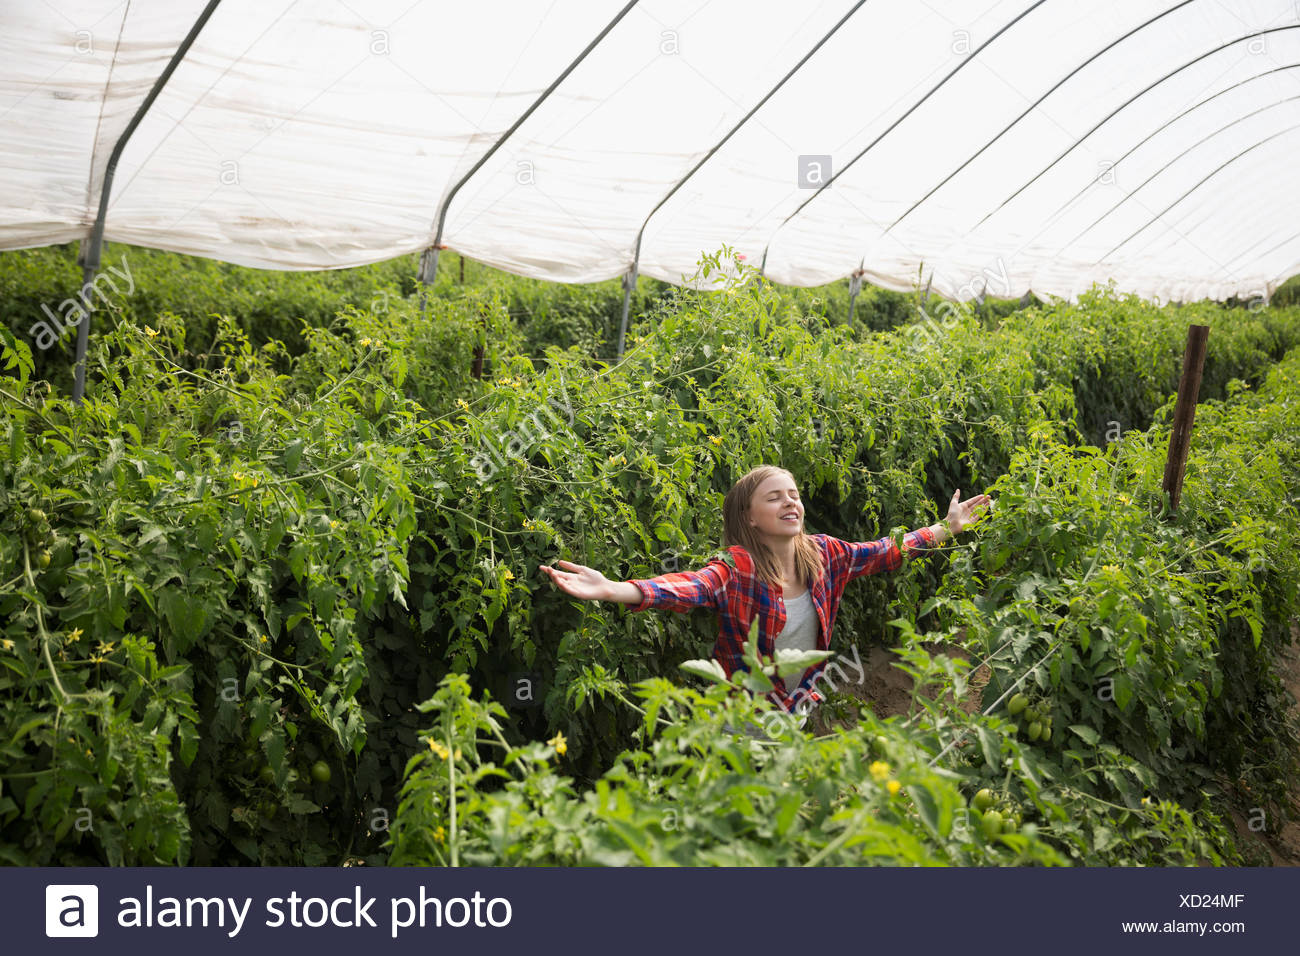 Carefree girl with arms outstretched in greenhouse with tomato plants - Stock Image